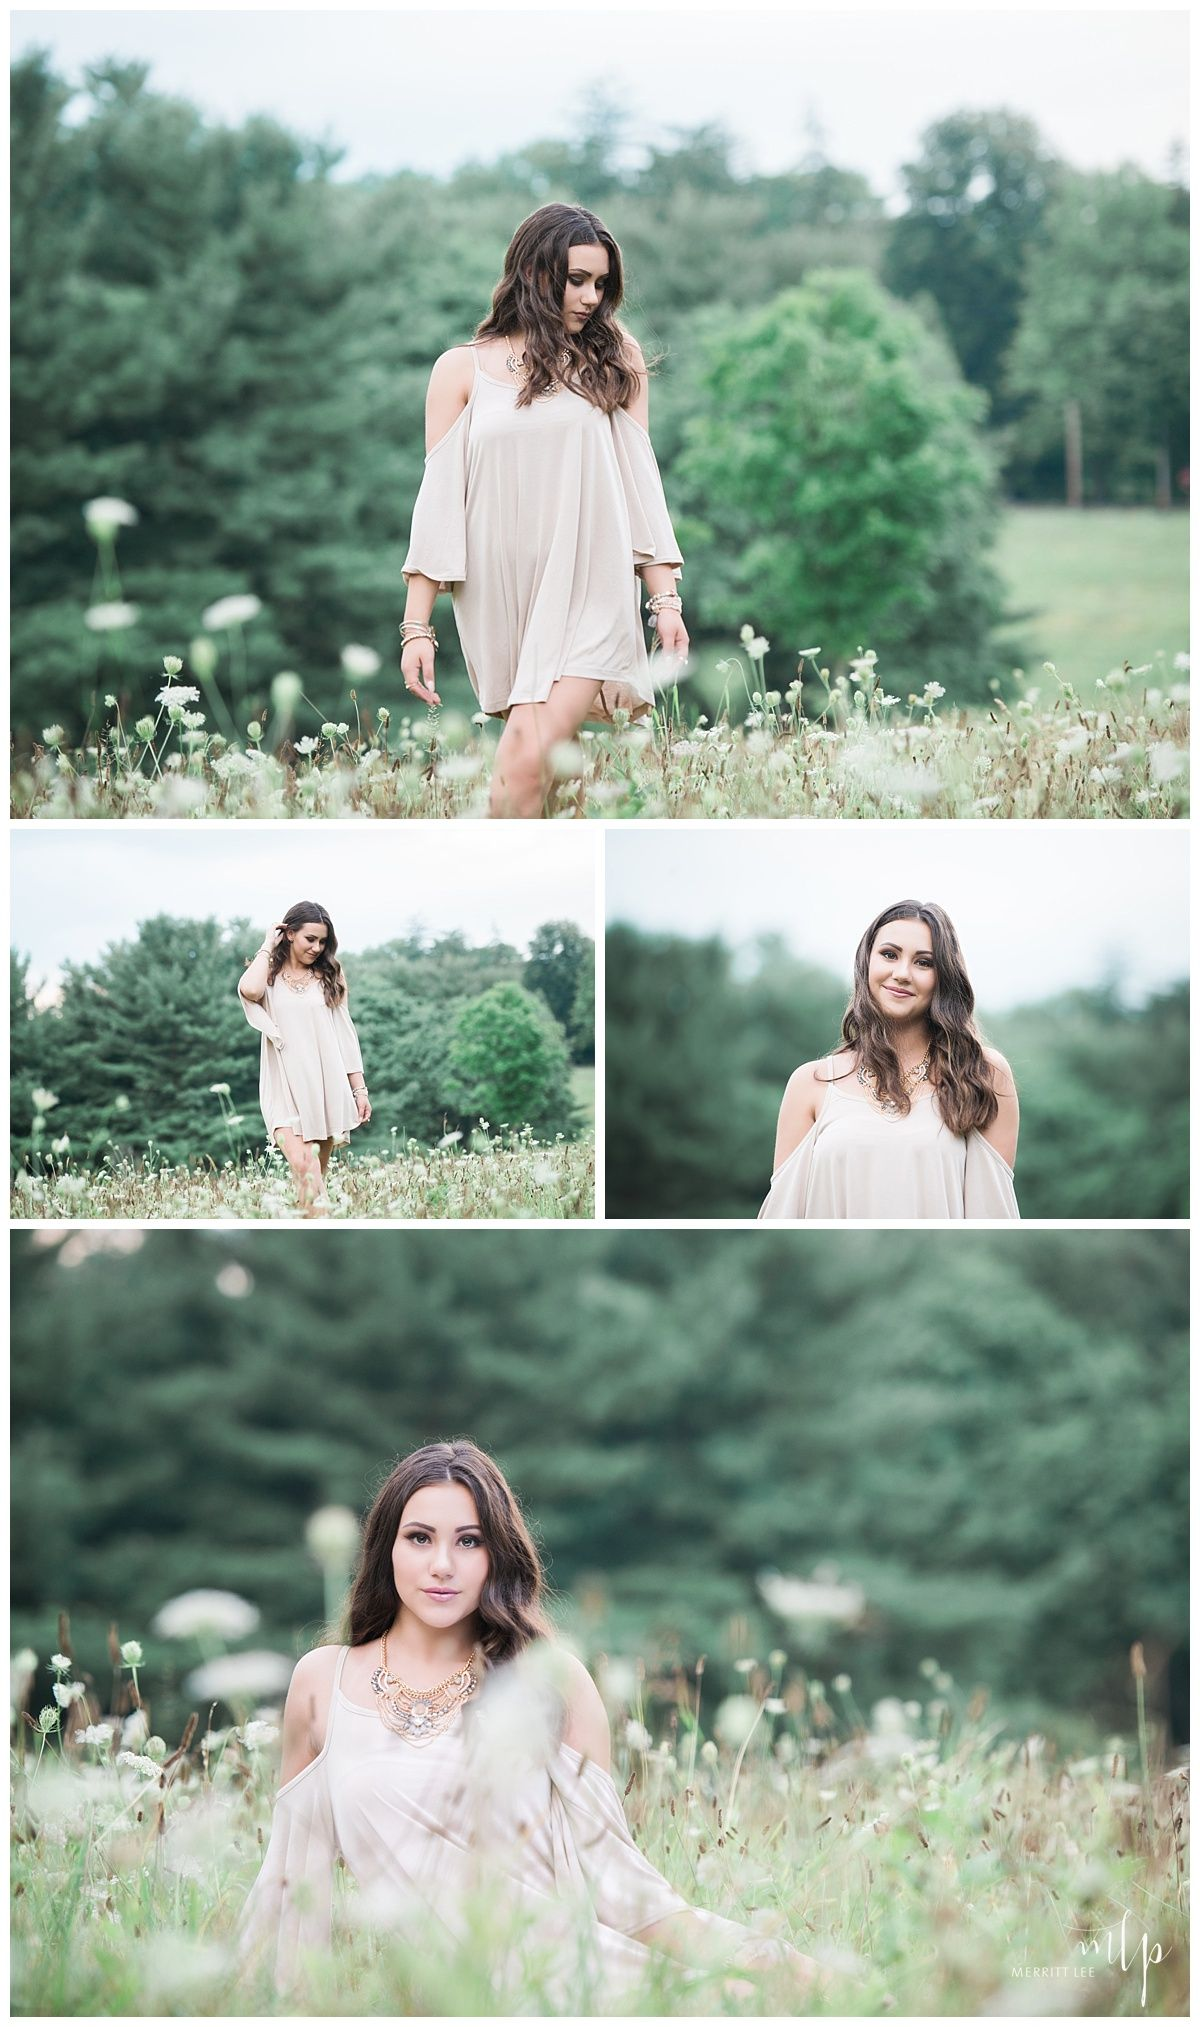 Haley | Outdoor Senior Portraits |Senior Picture Ideas For Girls Outside